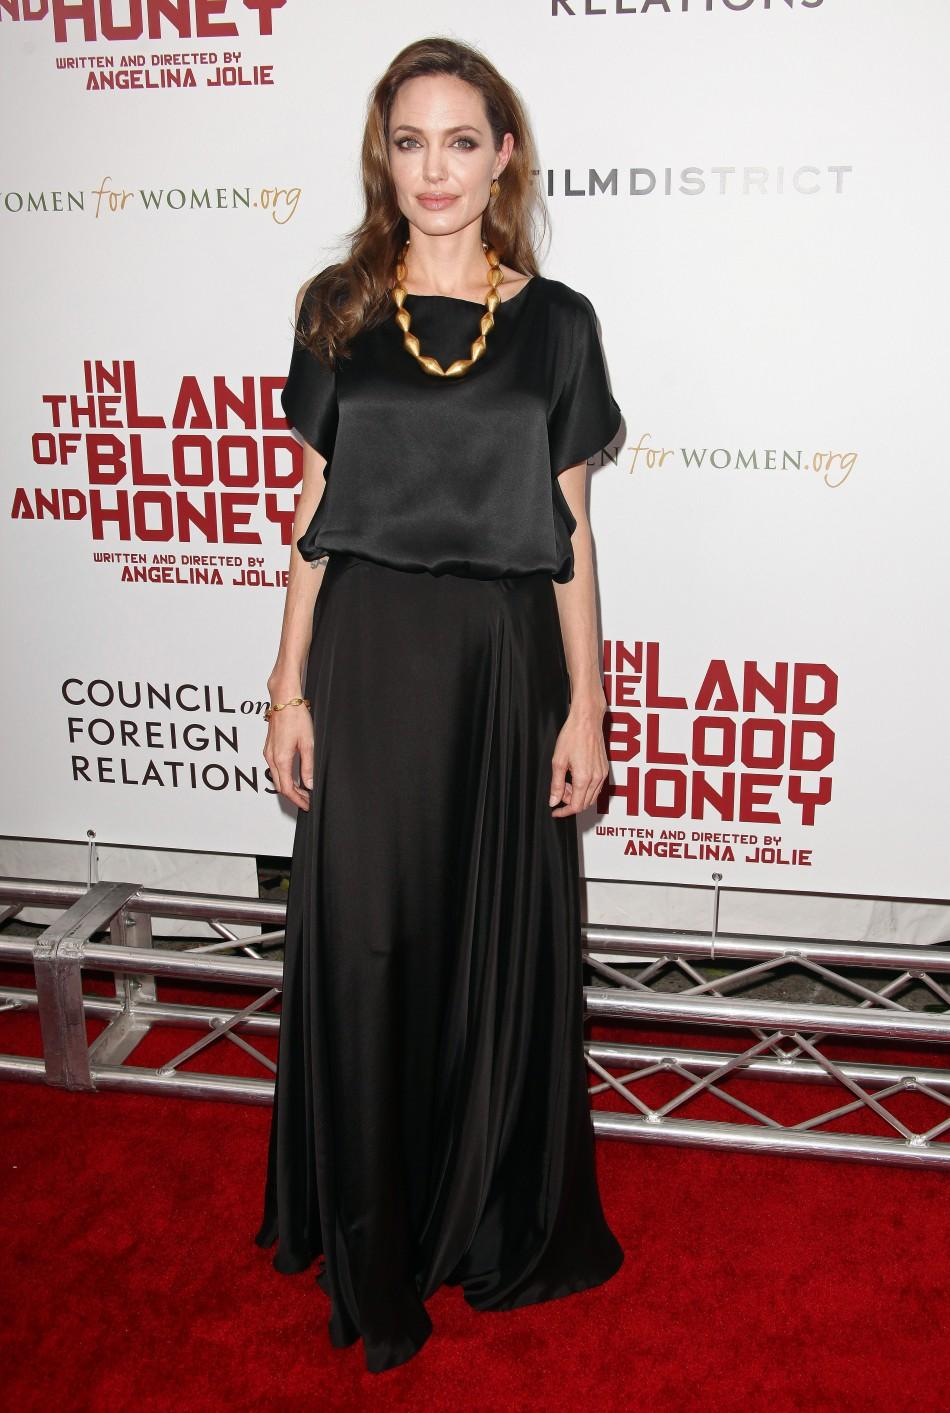 All-Black: A Look at Angelina Jolie's Fashion Stance